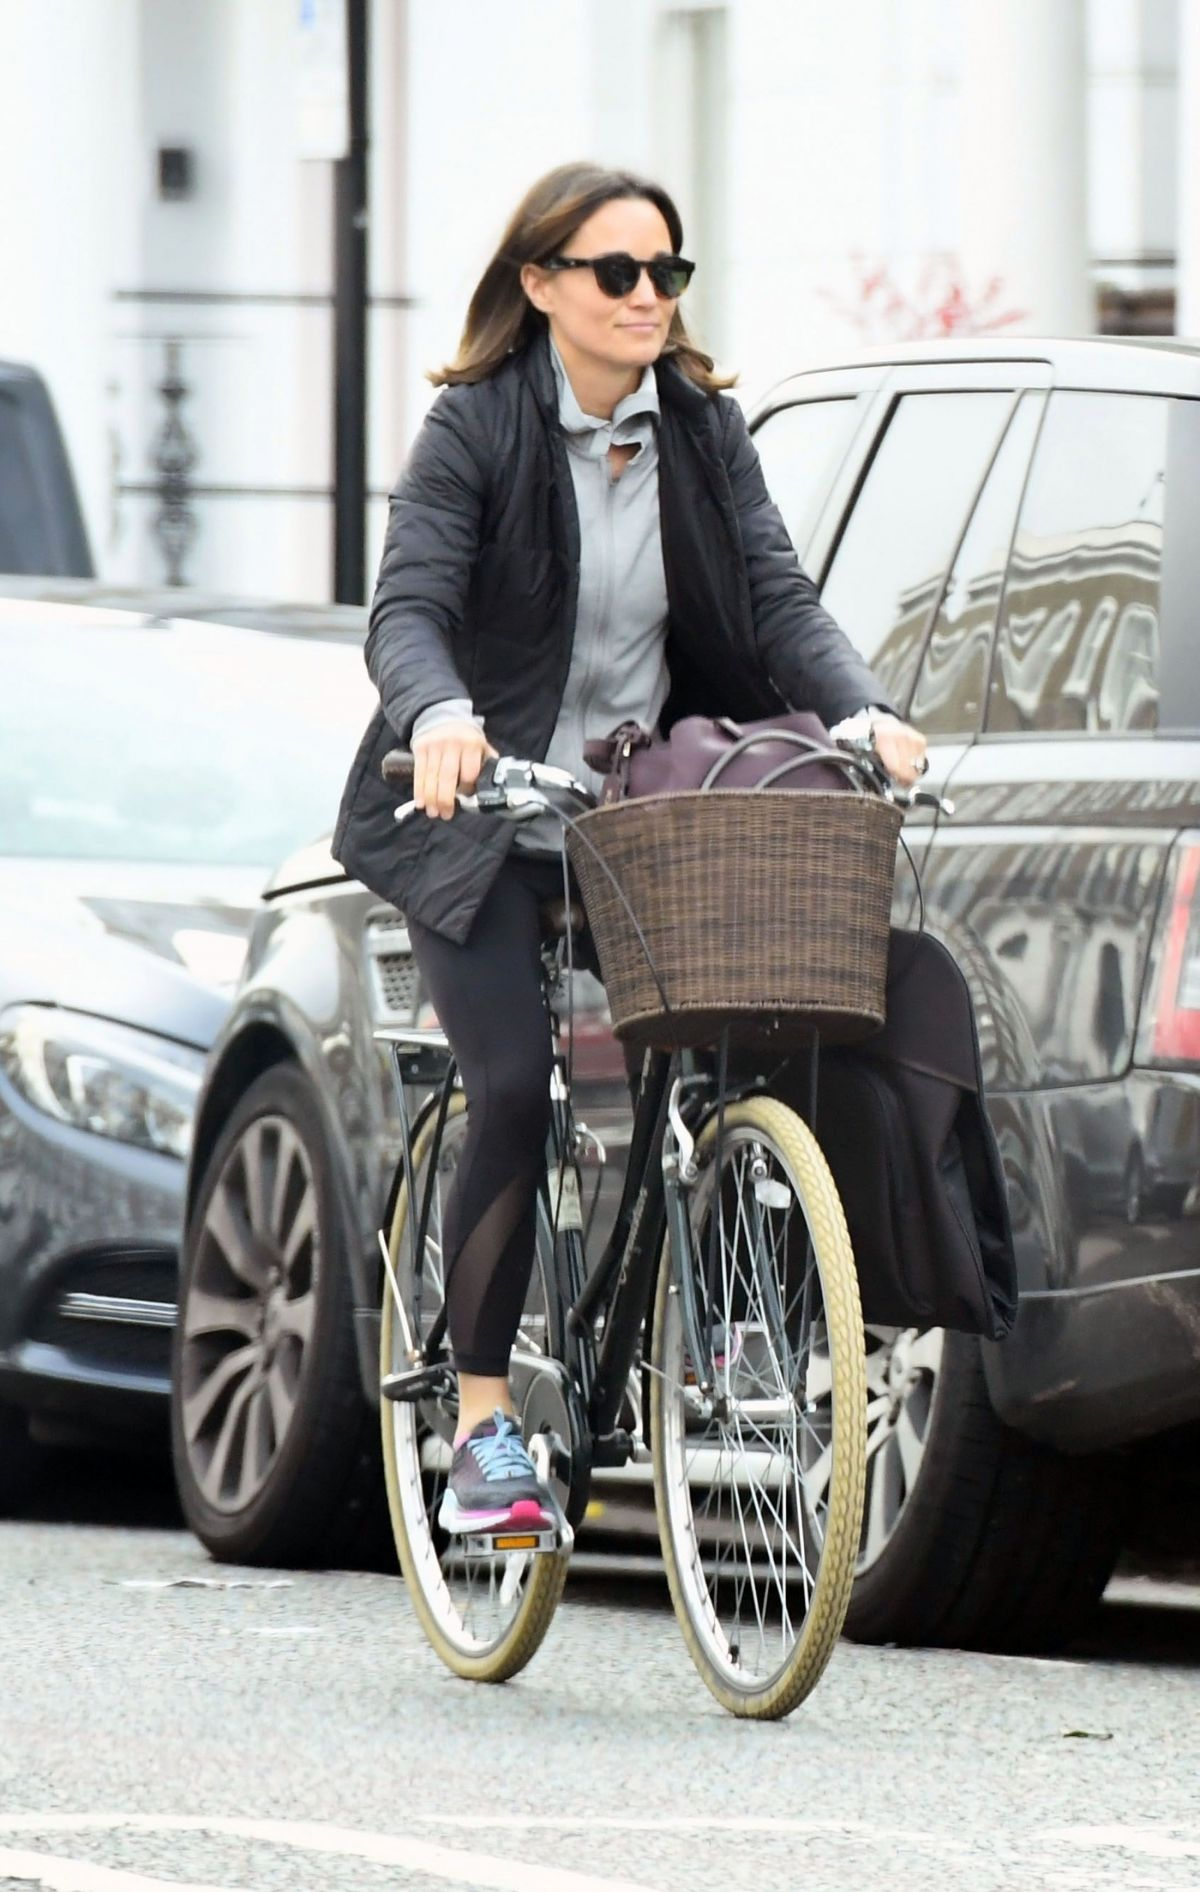 pippa-middleton-out-riding-a-bicycle-in-london-11-09-2017-10.jpg